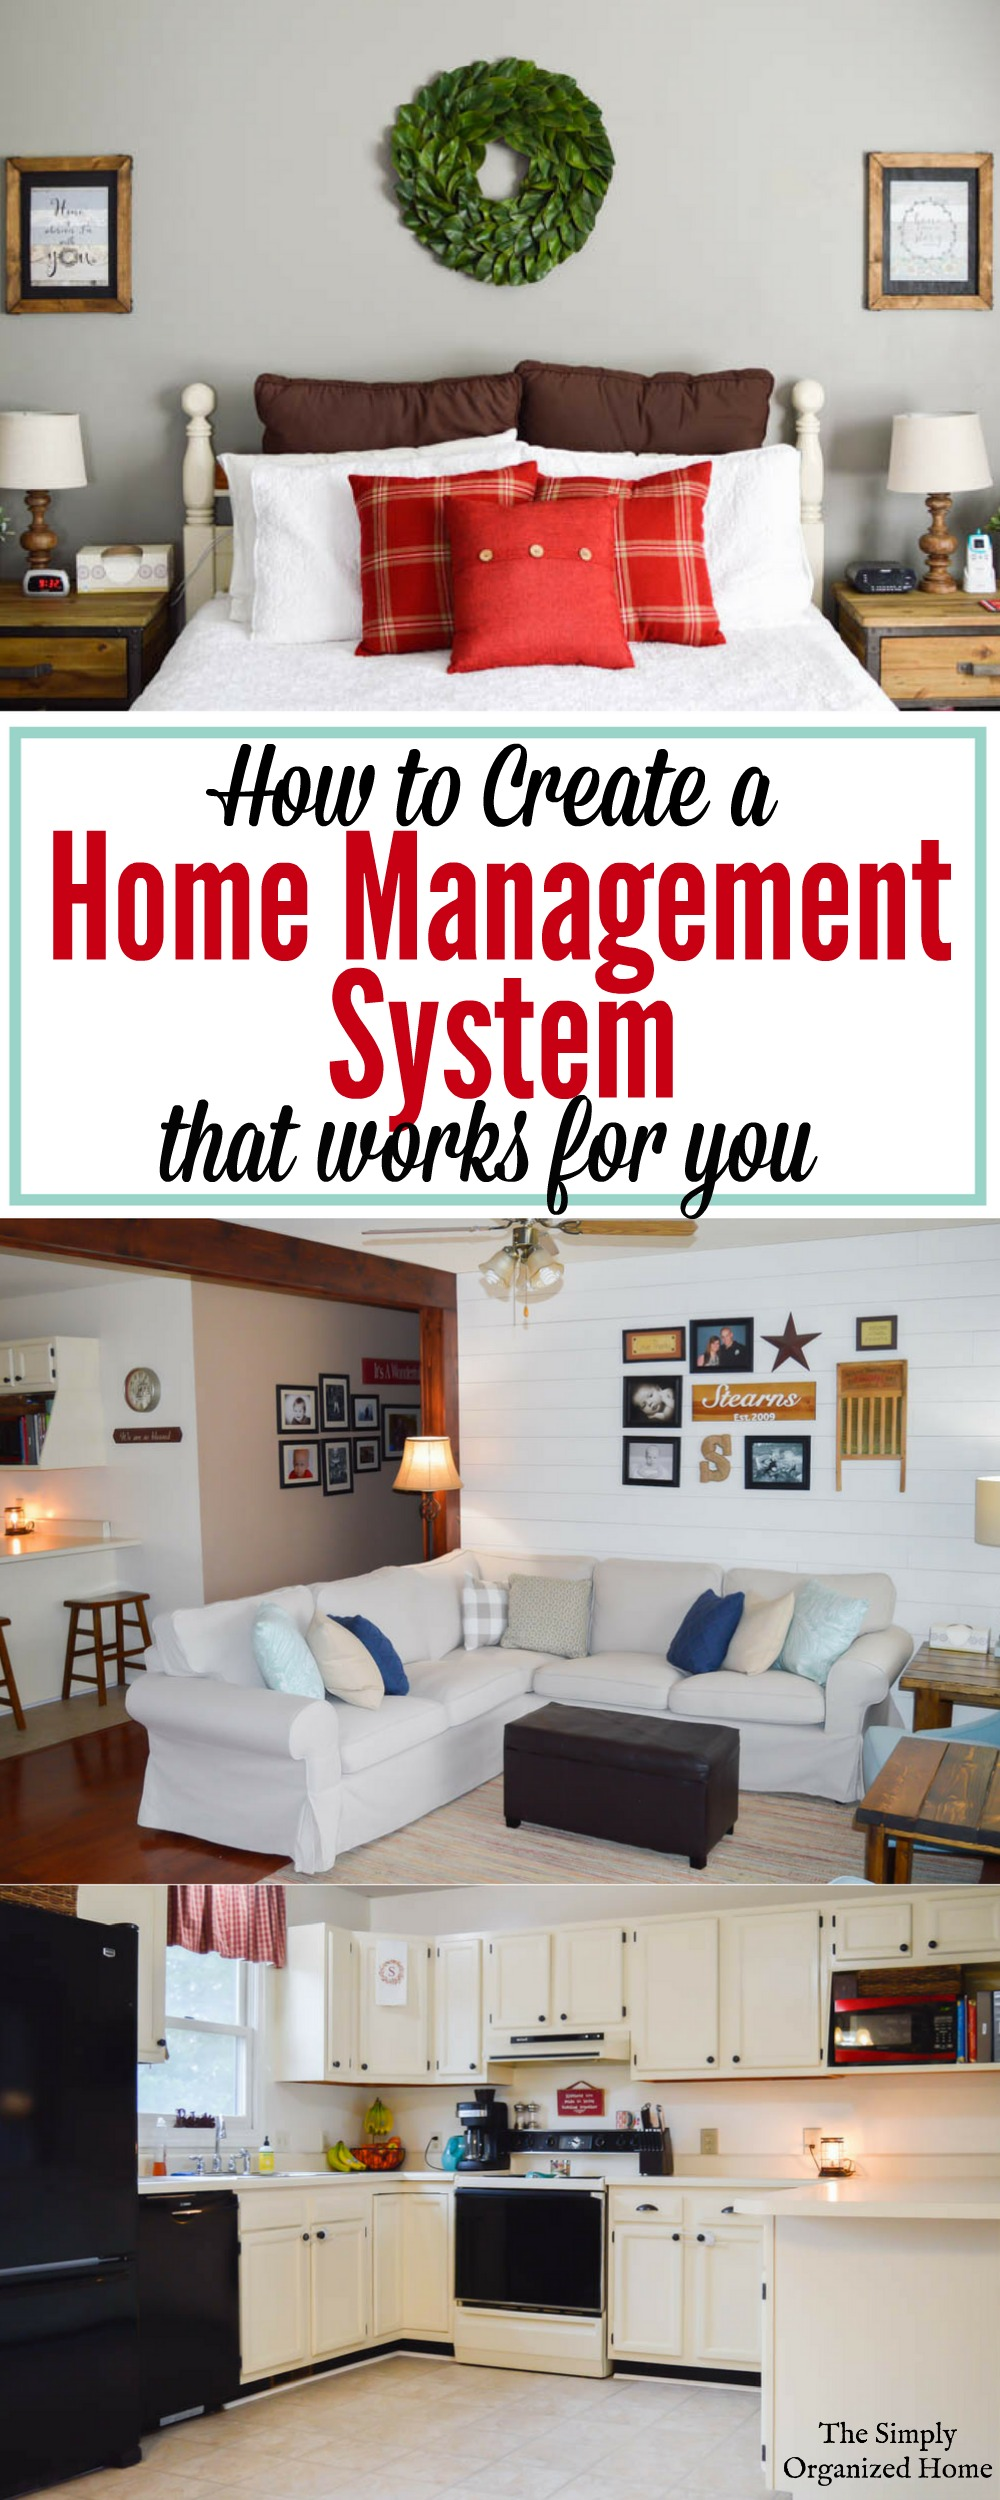 When you think of all of the many parts of homemaking, it can seem overwhelming. However, it doesn't have to be if you create a system that works for you.